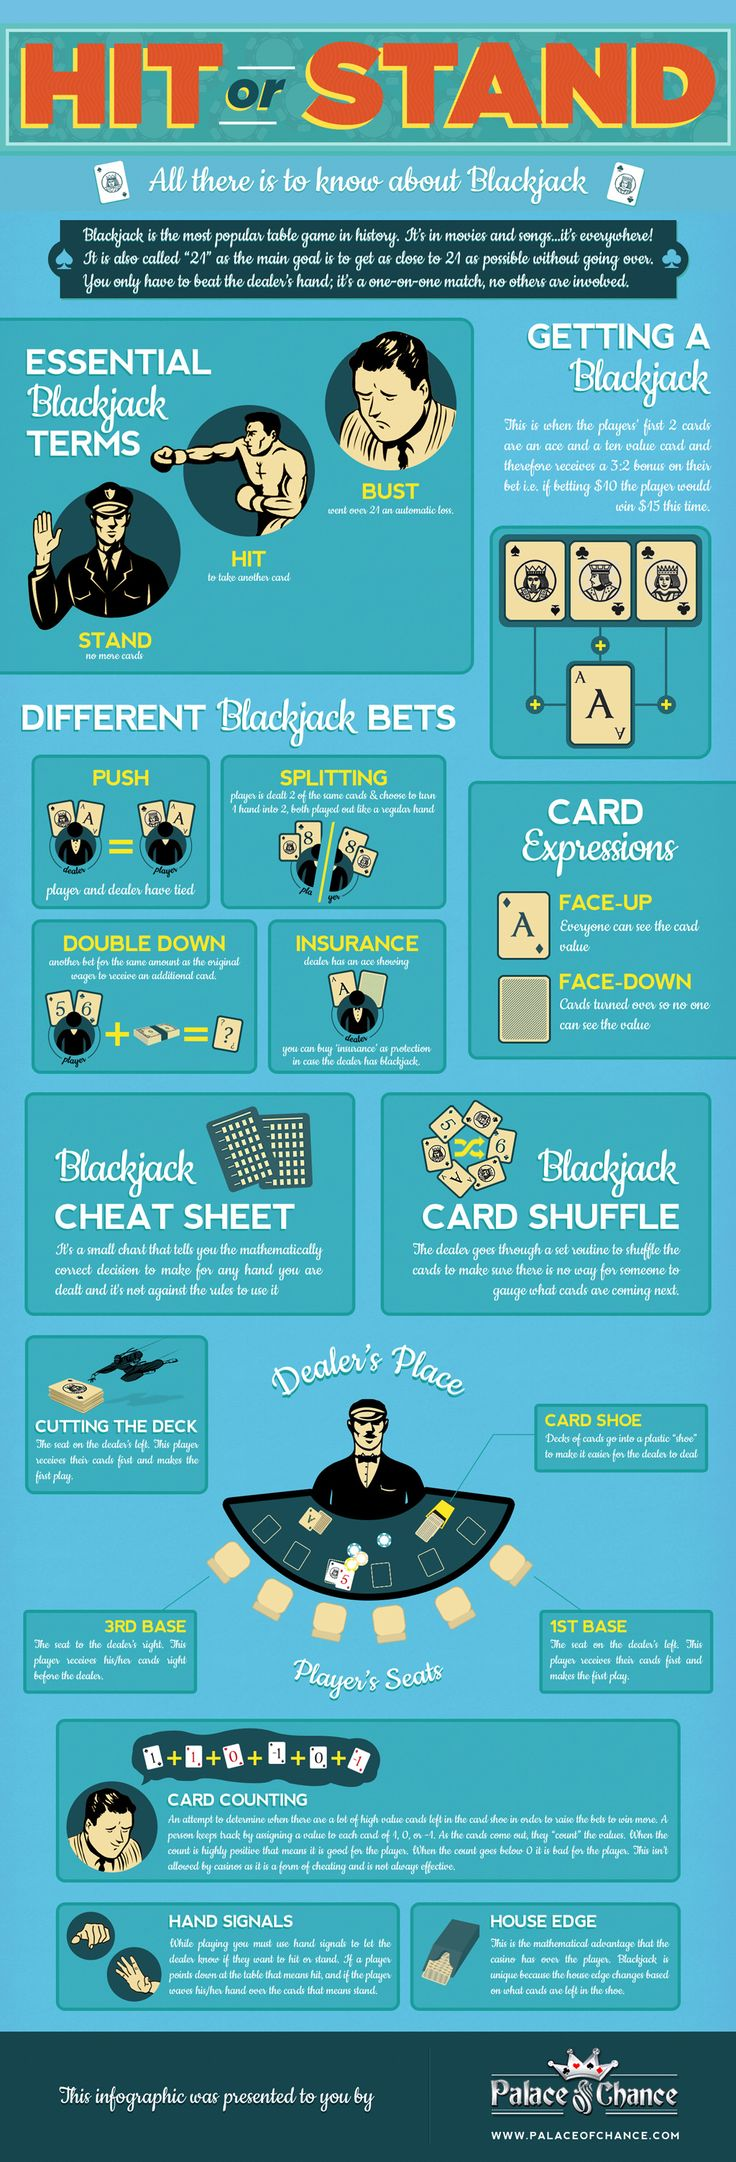 blackjack 7 card game rules